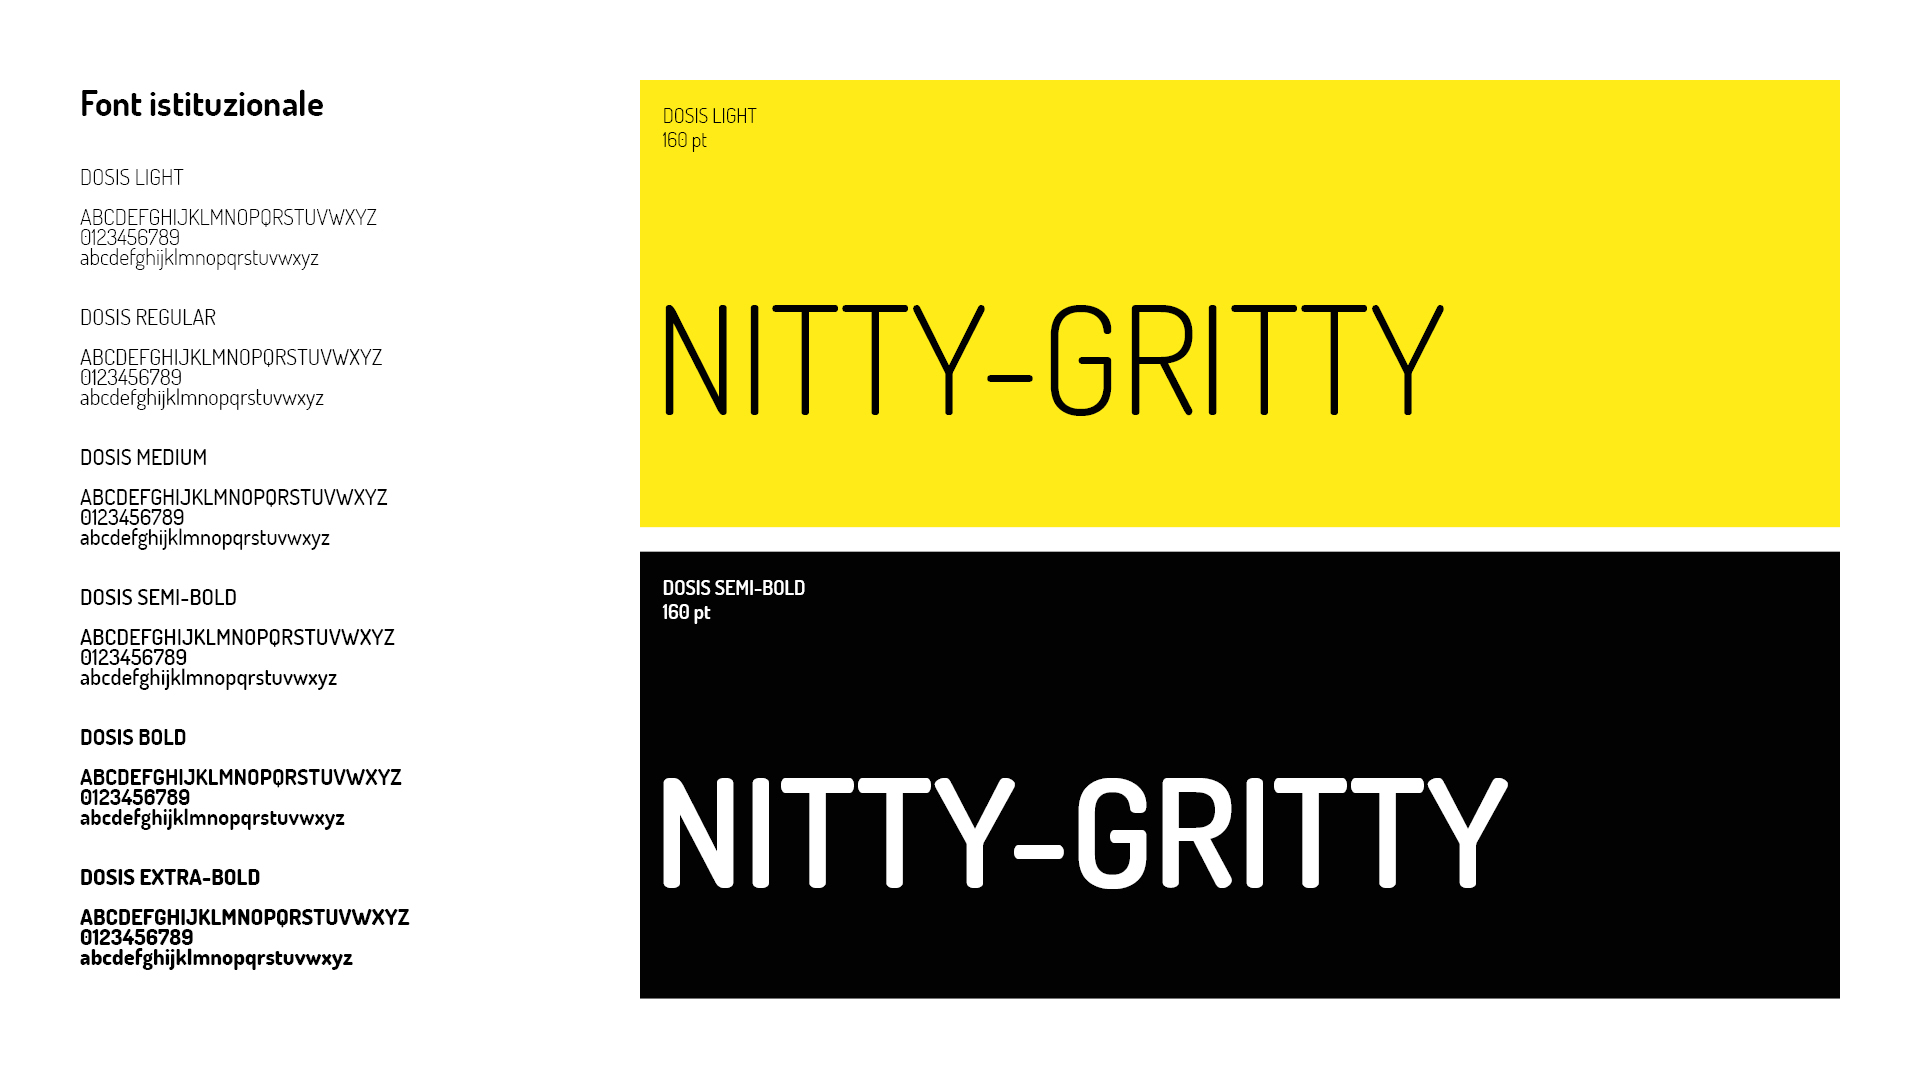 Font Nitty-Gritty